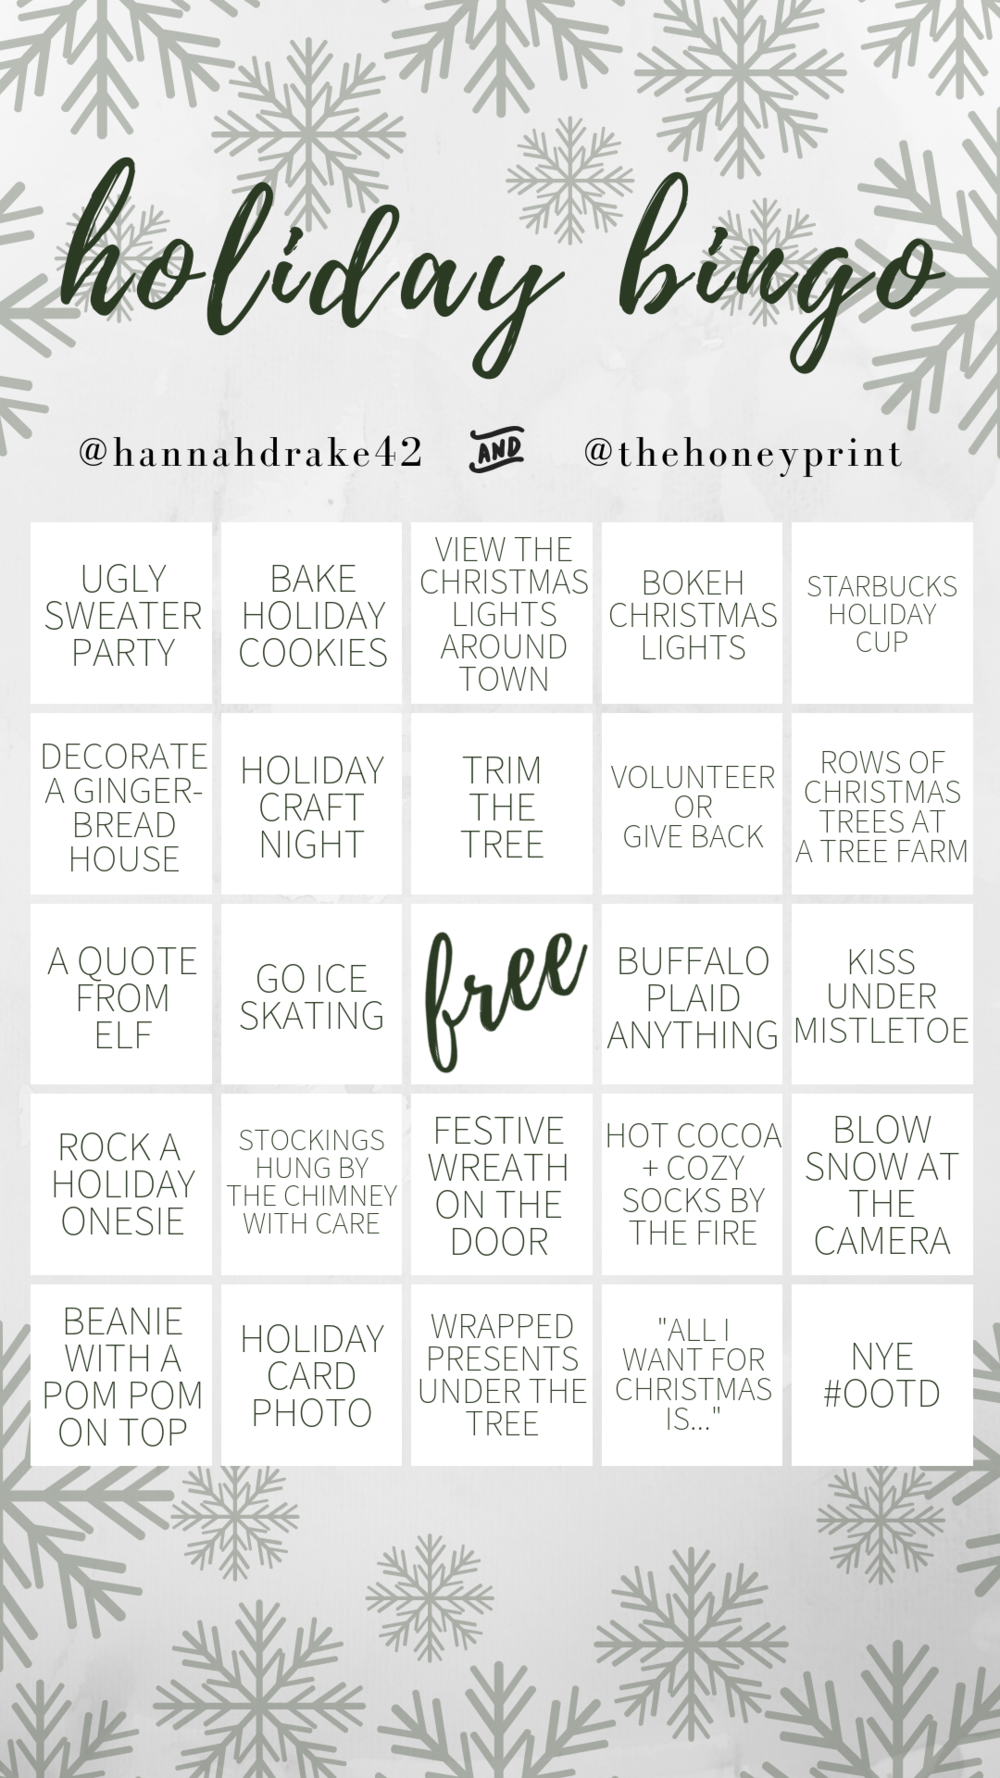 Holiday Bingo with @hannahdrake42 and @thehoneyprint